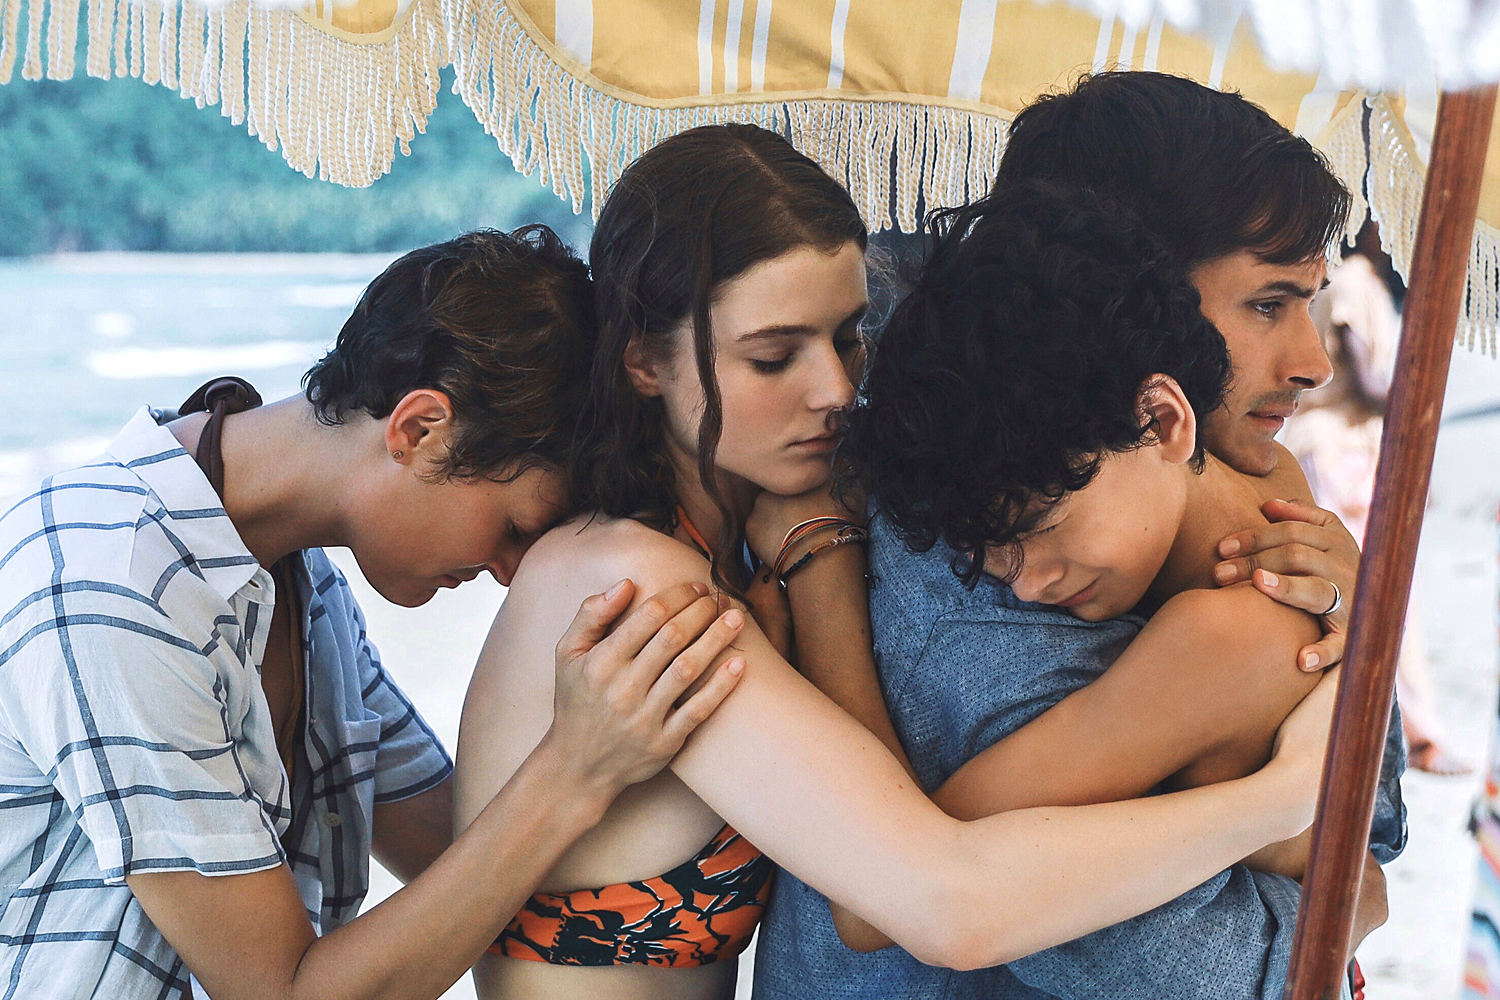 (from left) Prisca (Vicky Krieps), Maddox (Thomasin McKenzie), Guy (Gael García Bernal) and Trent (Luca Faustino Rodriguez) in Old